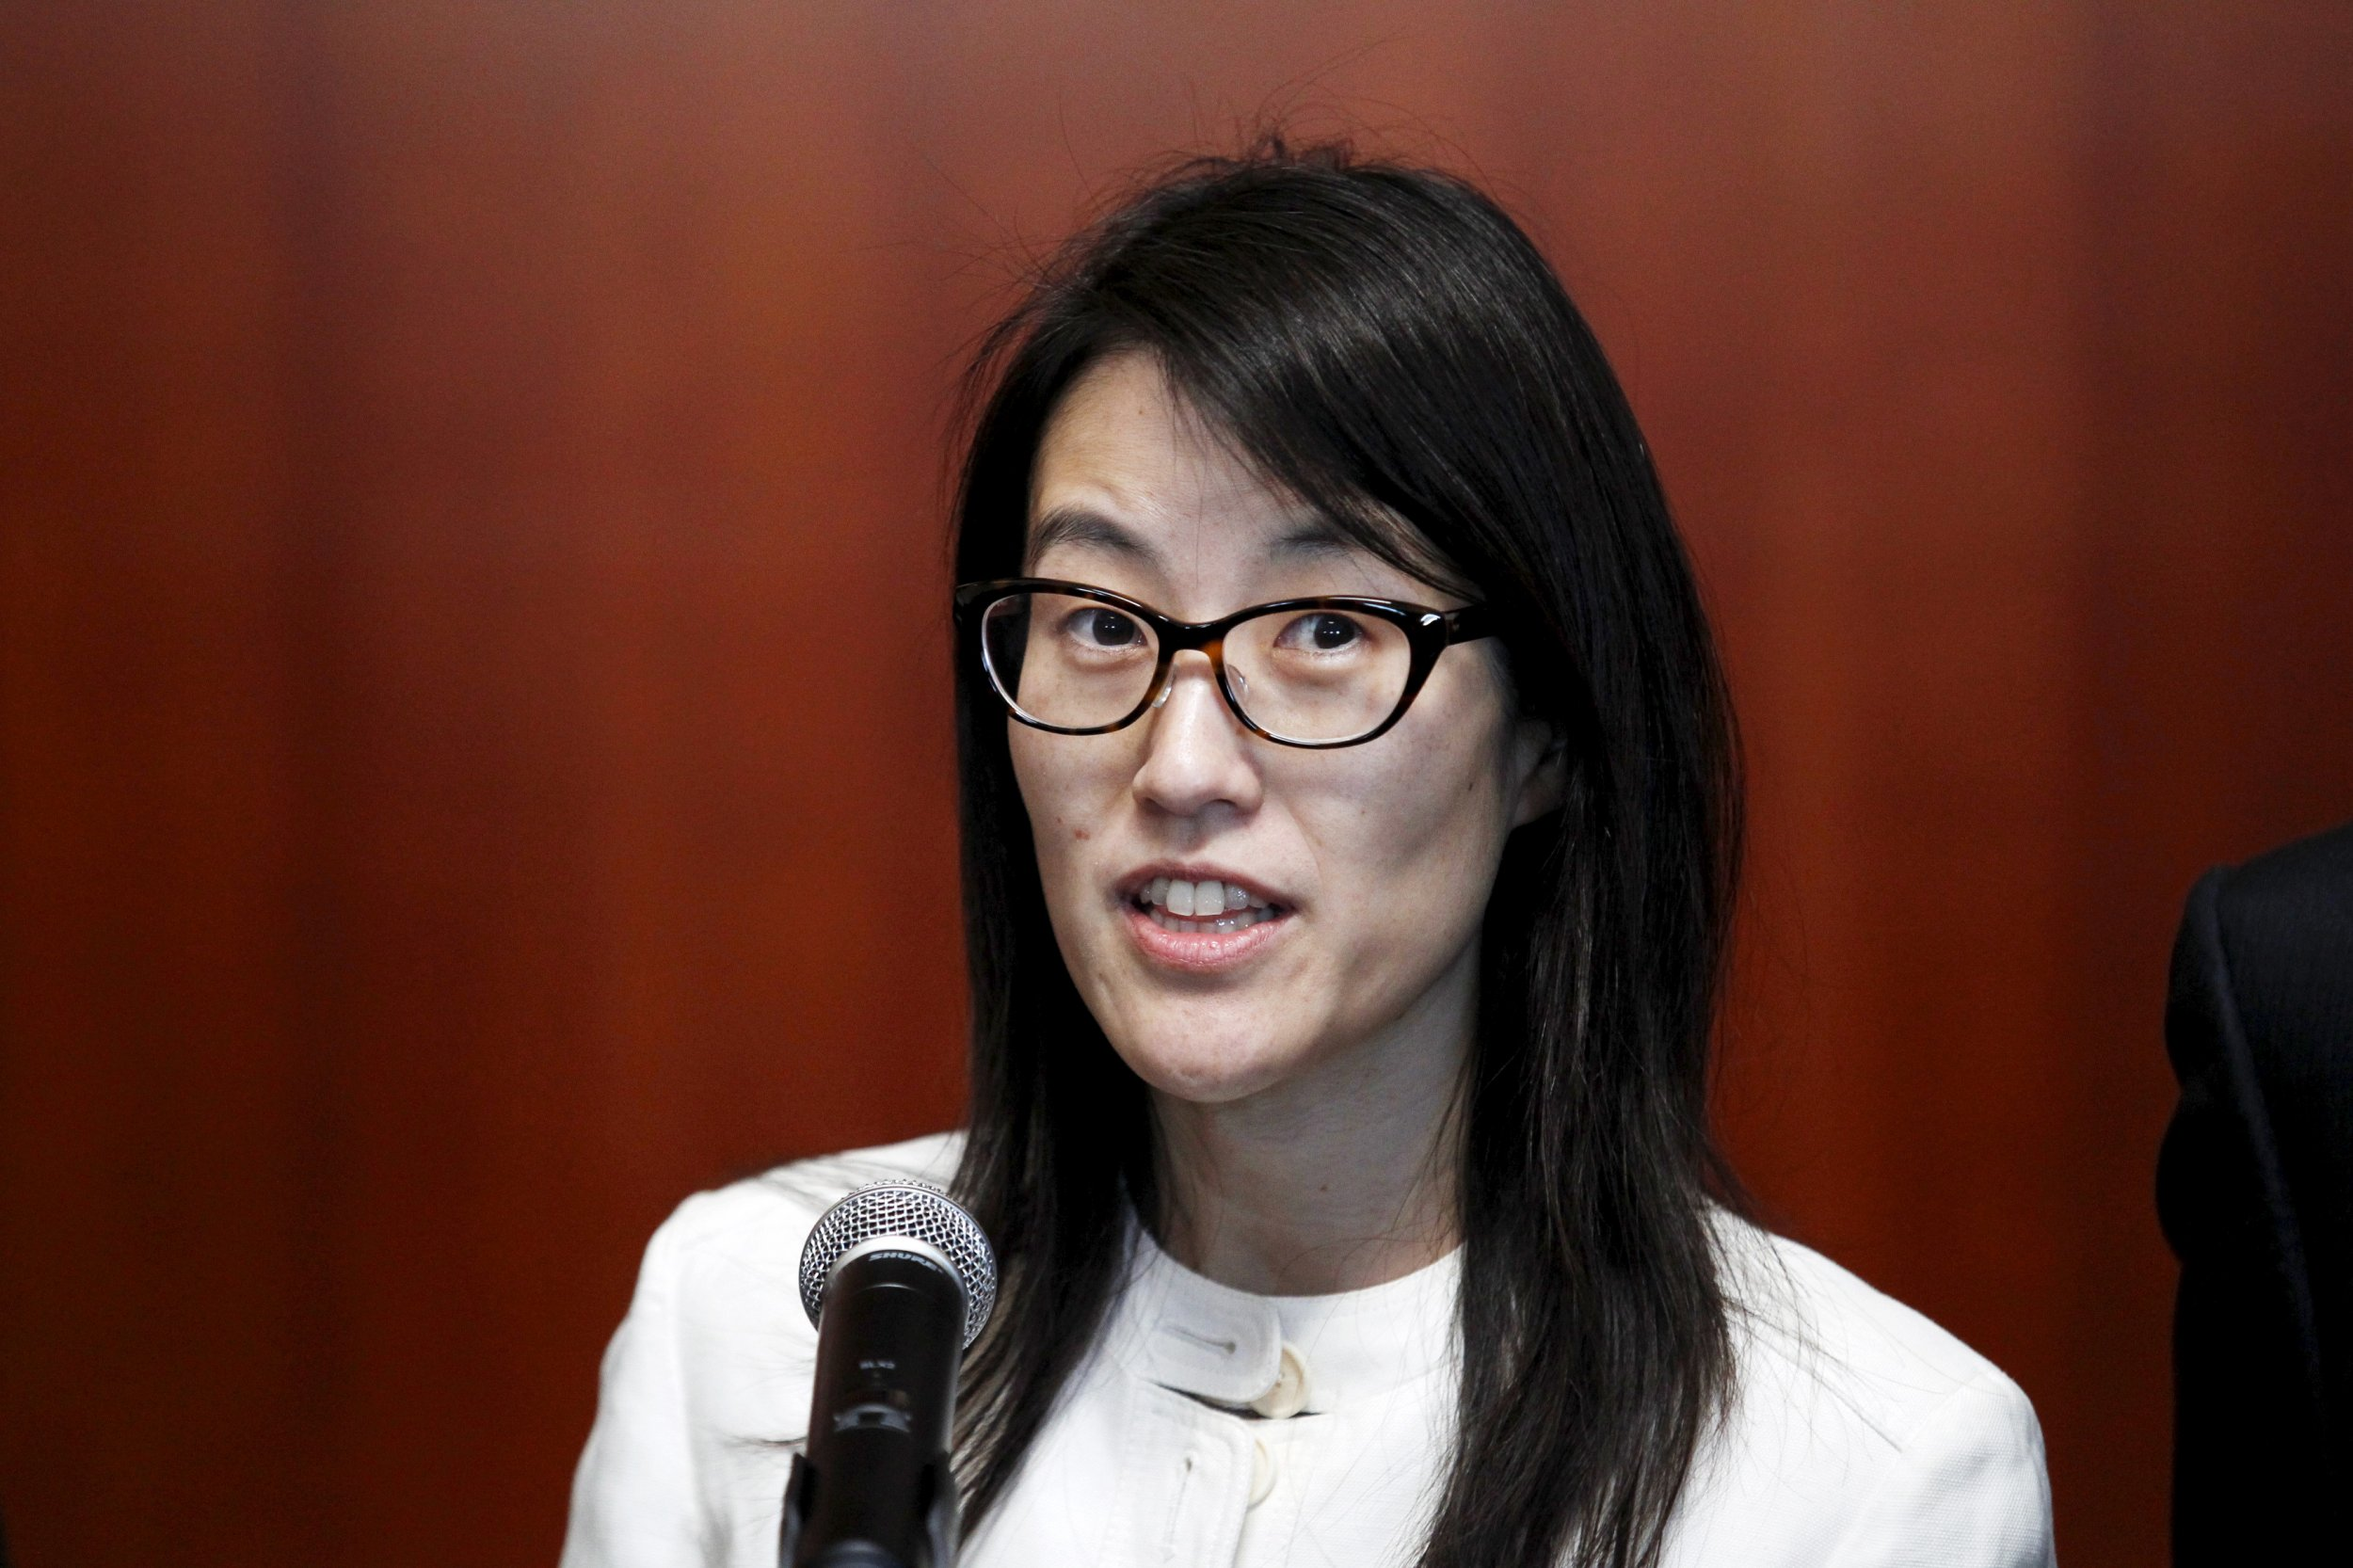 Interim Reddit CEO Ellen Pao upset users when a popular employee was fired.